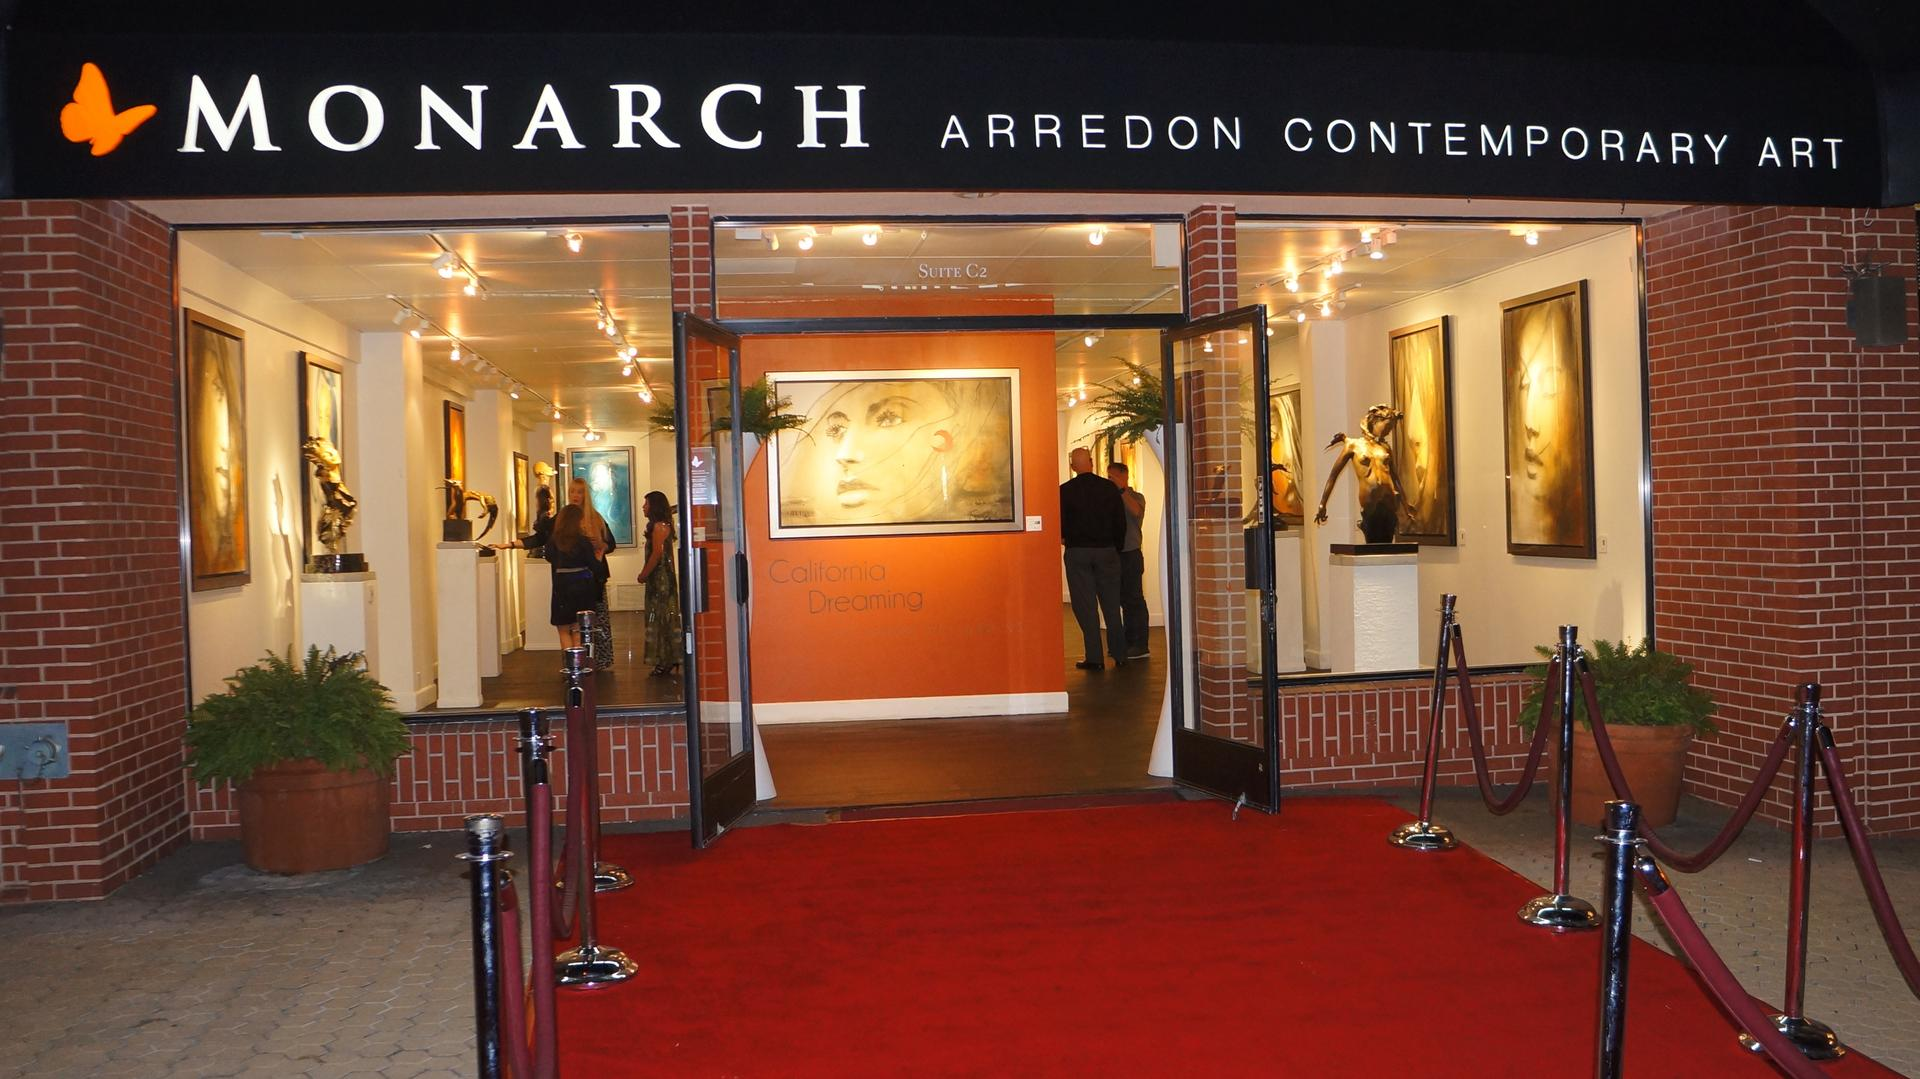 space at Monarch | Arredon Contemporary